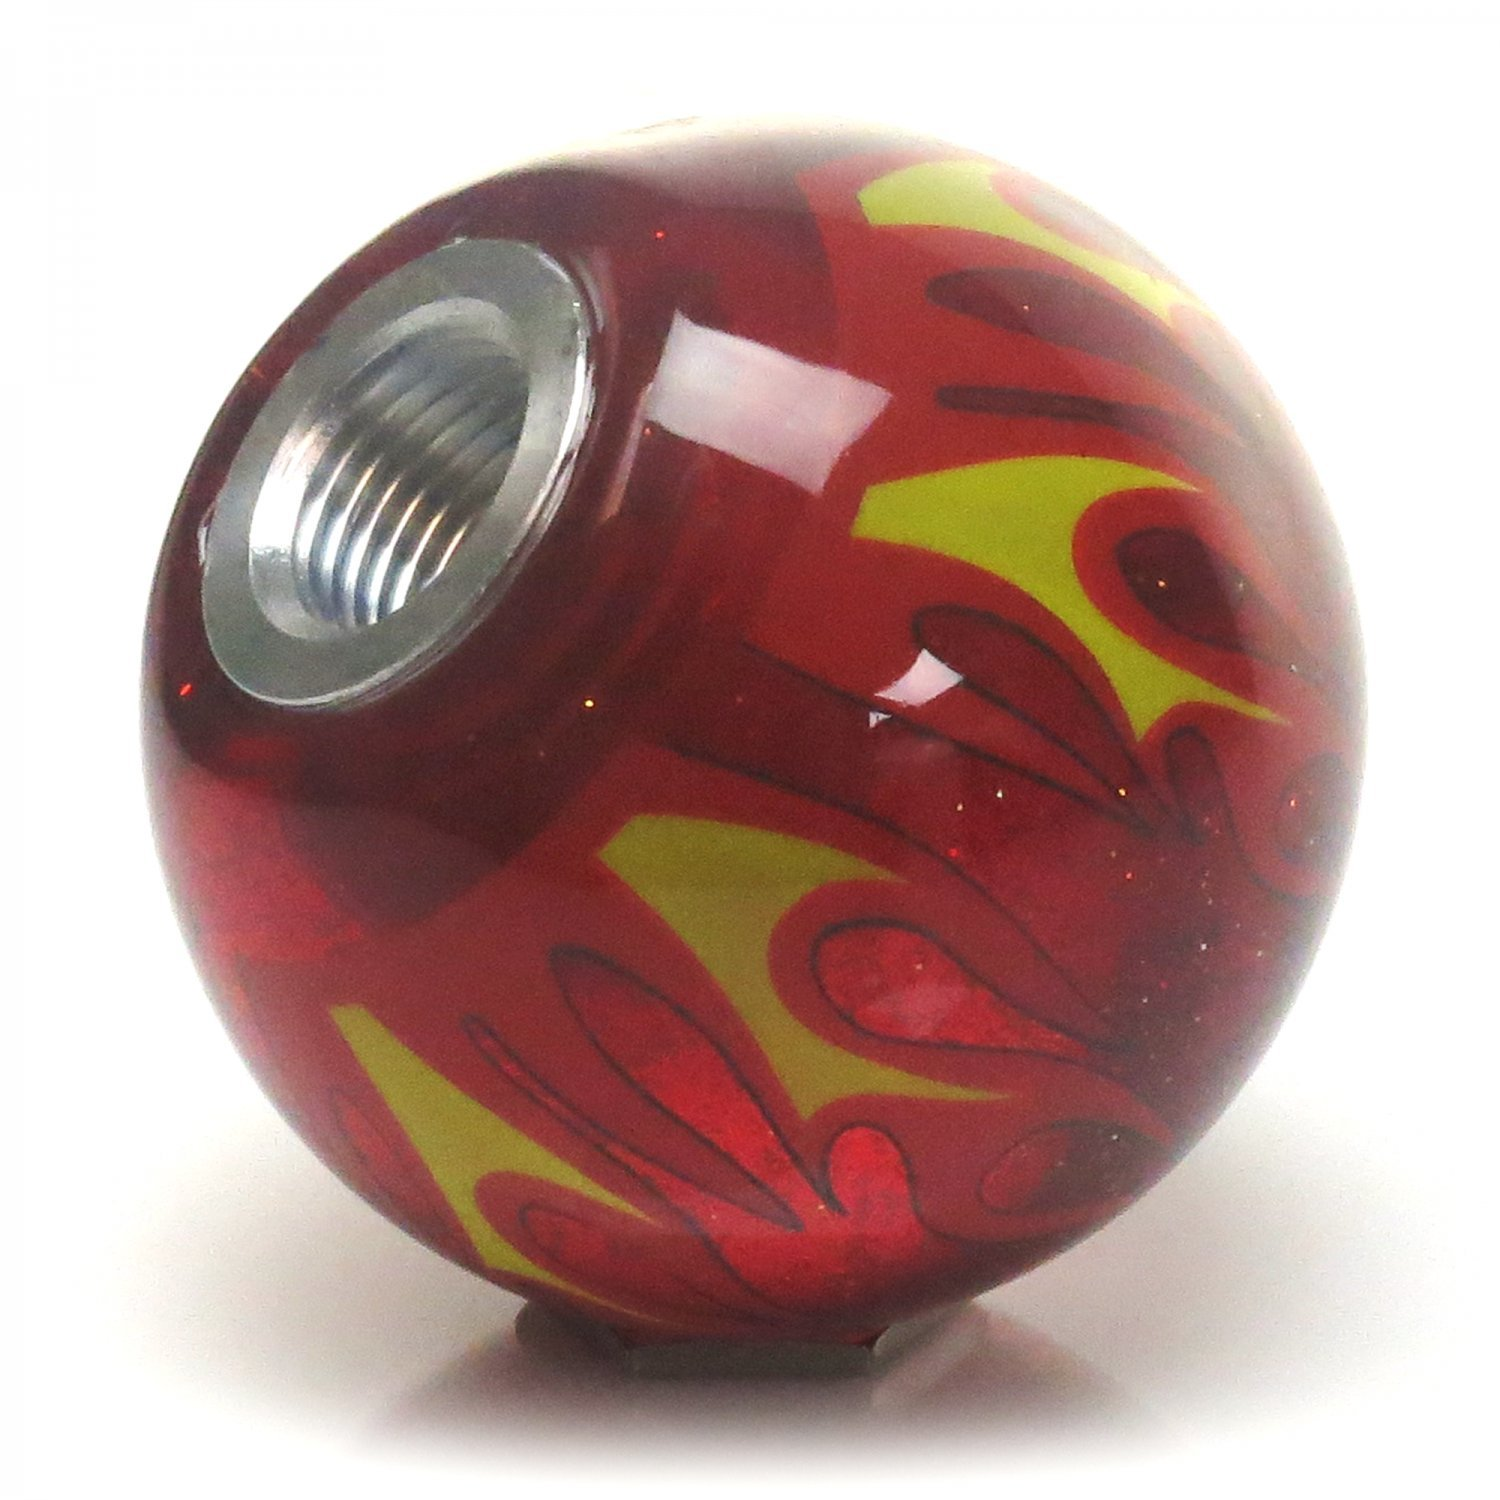 Blue Checkered Flags American Shifter 238560 Red Flame Metal Flake Shift Knob with M16 x 1.5 Insert